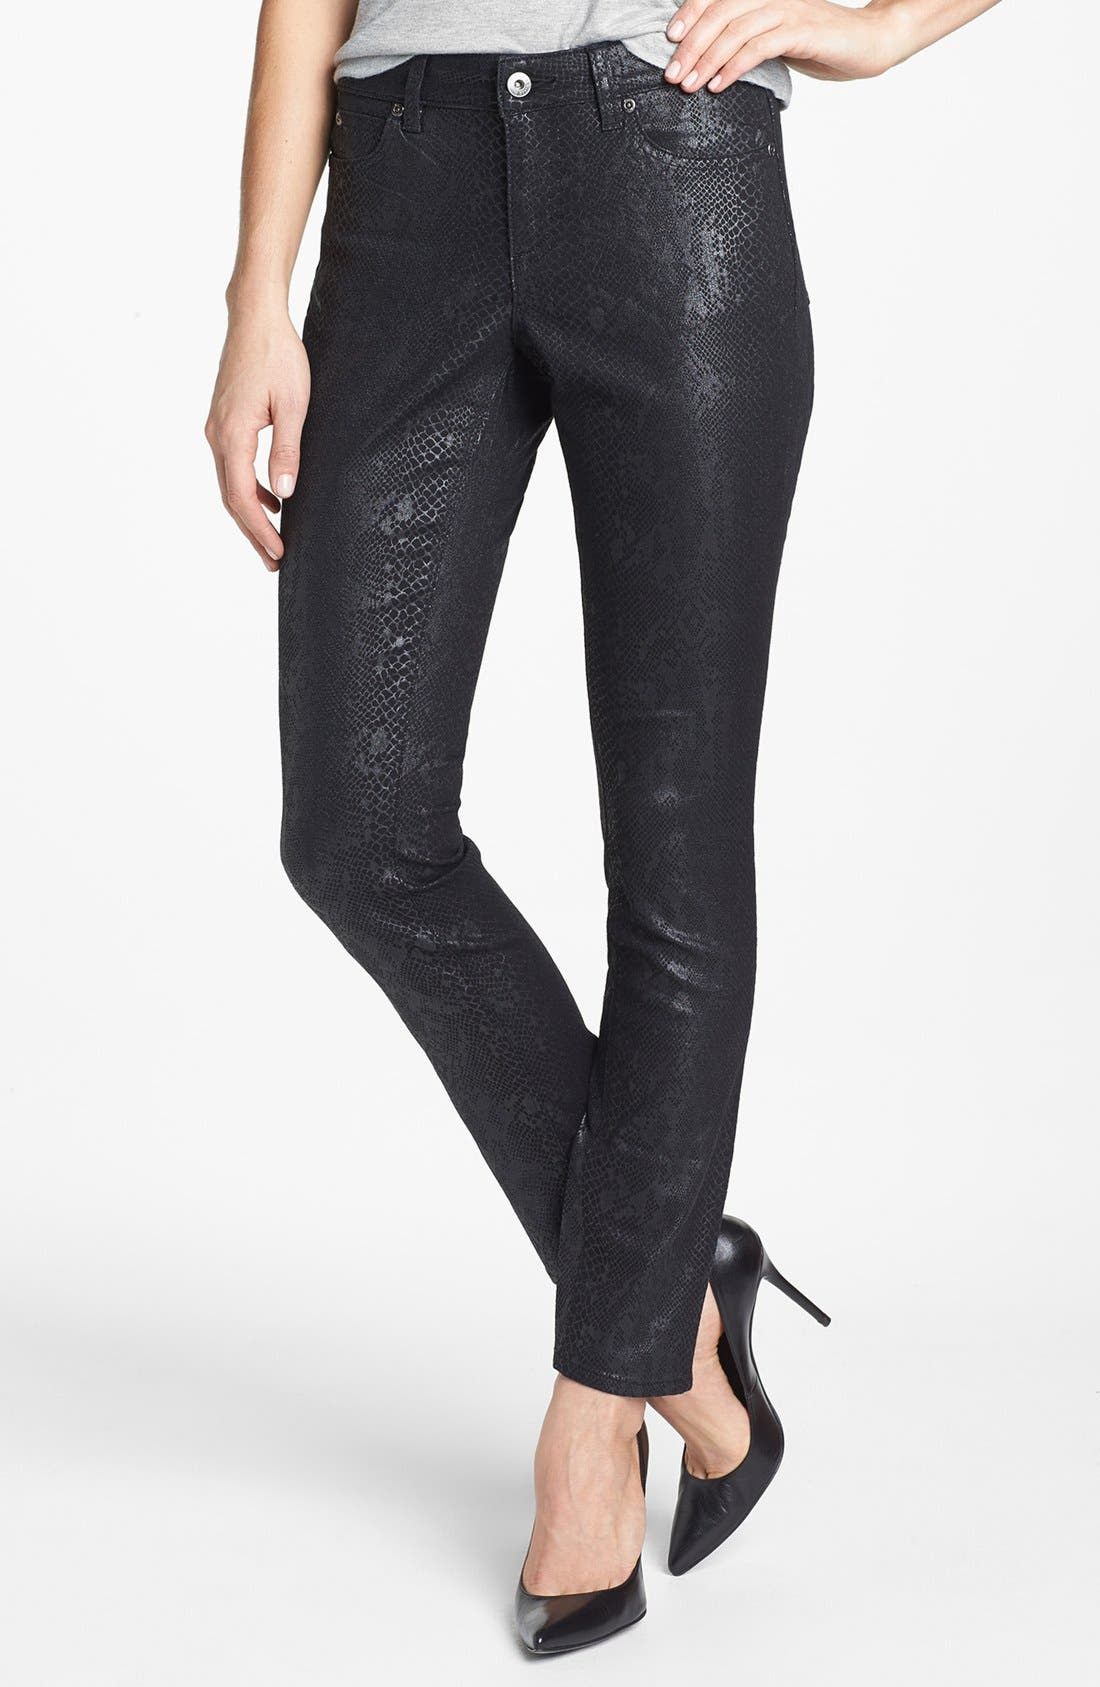 Main Image - Two by Vince Camuto Foiled Snakeskin Print Skinny Jeans